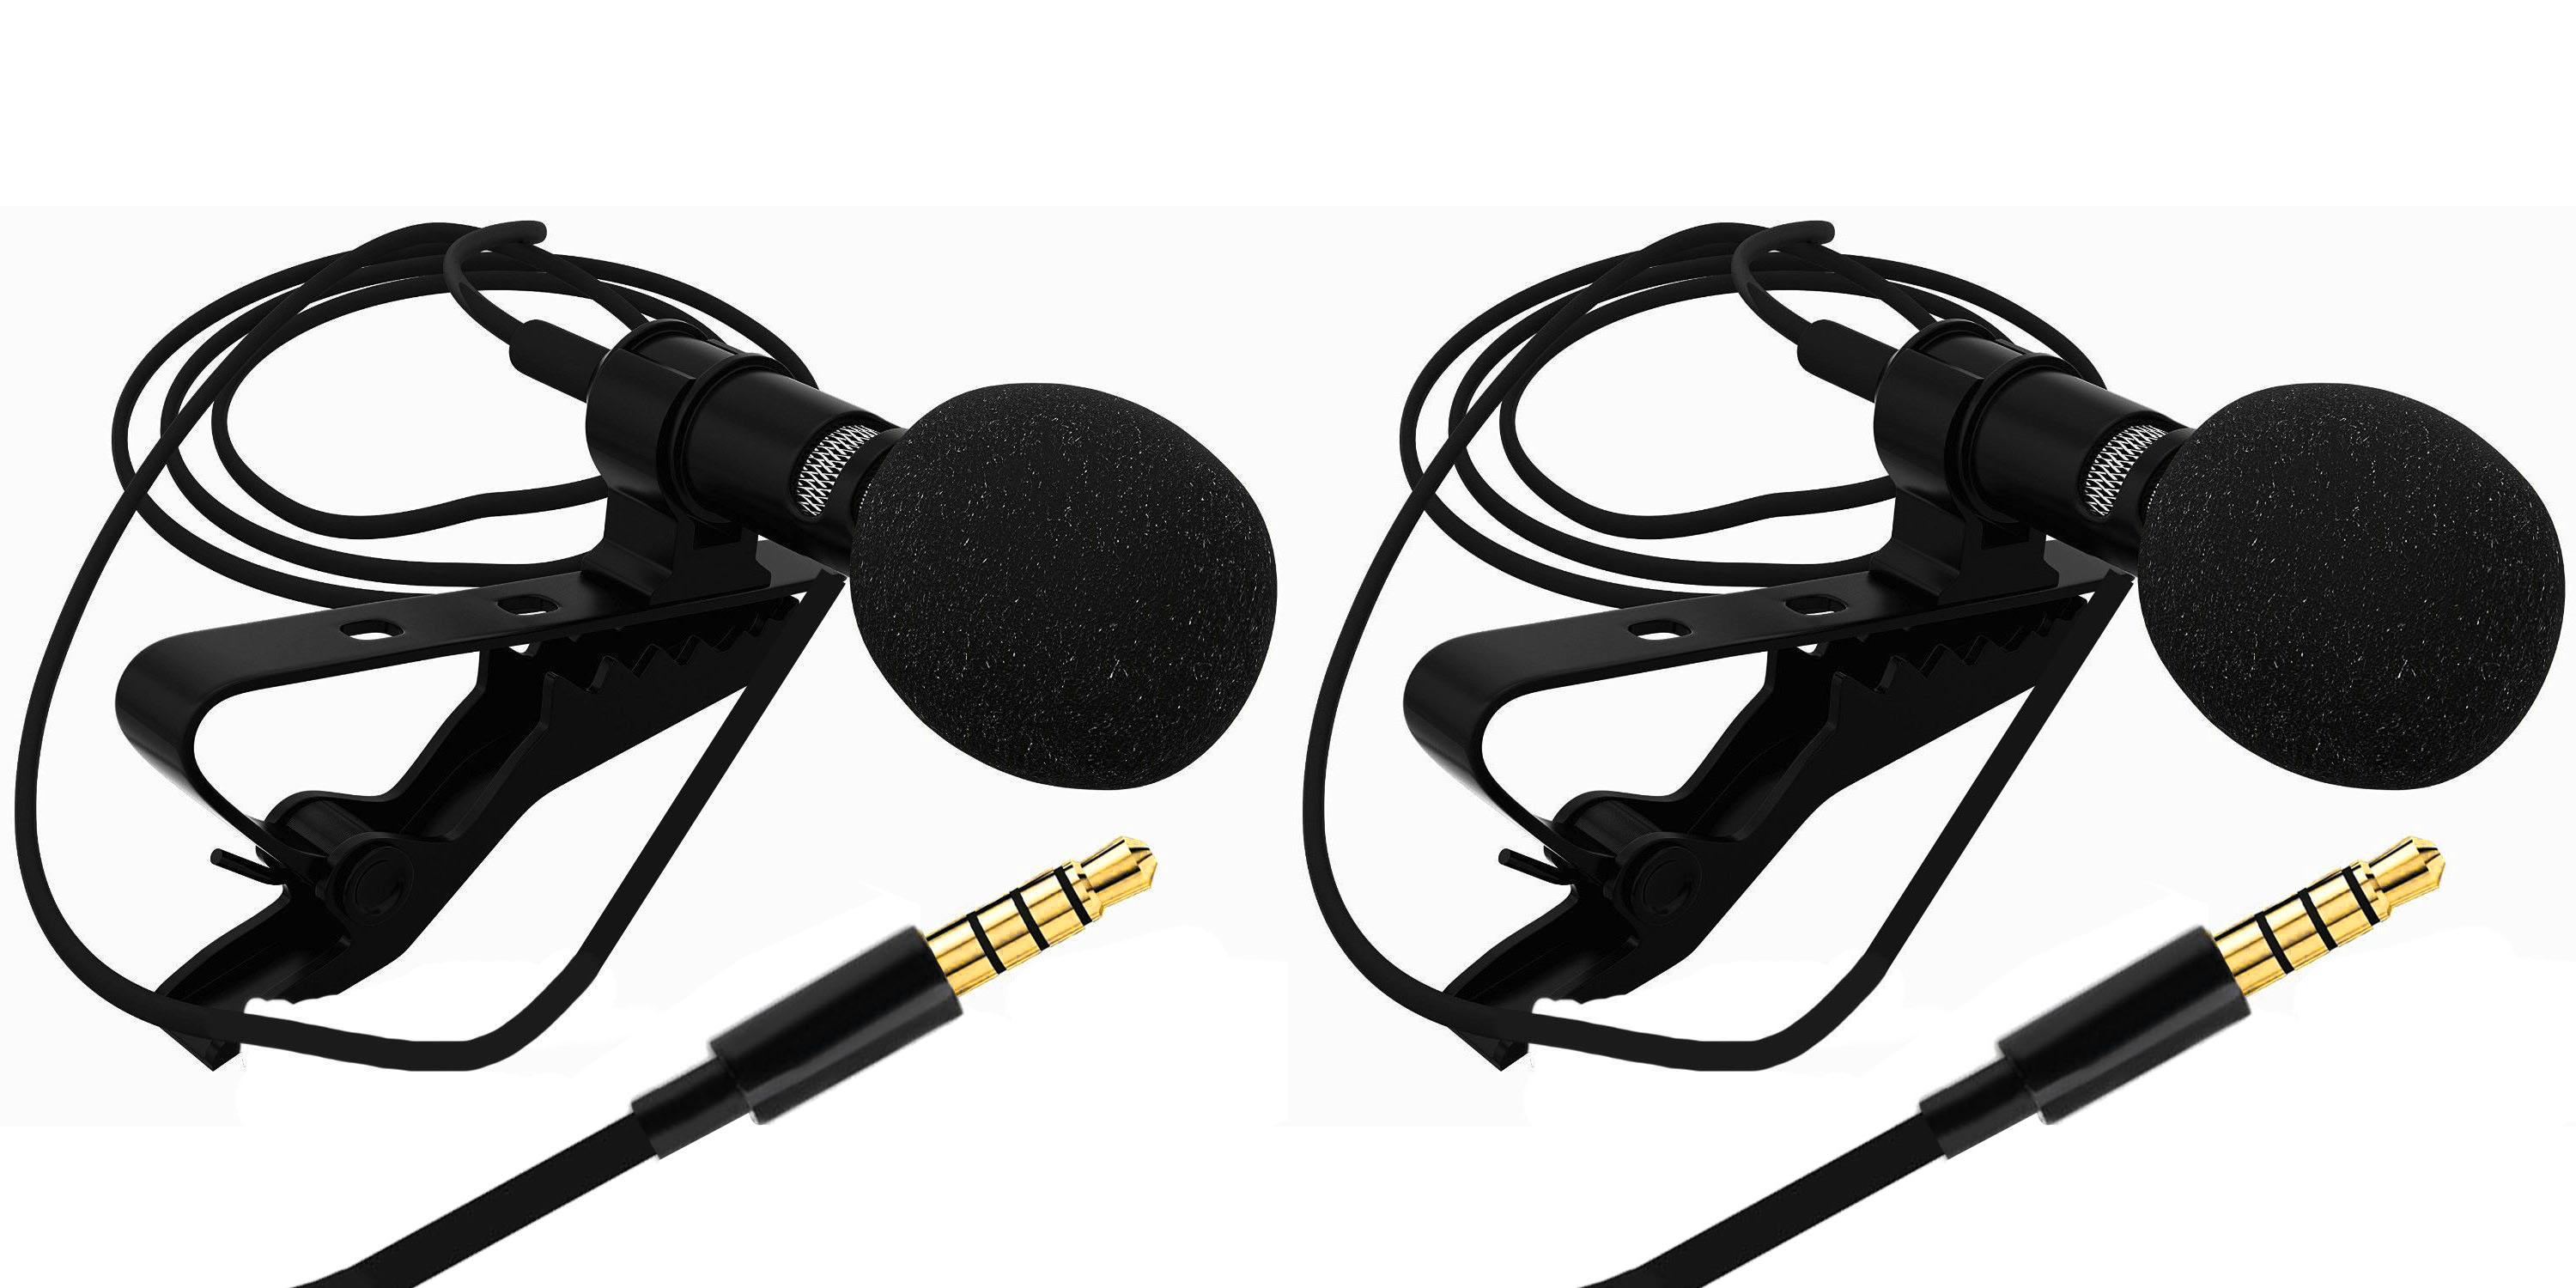 Sami Collar MIC Multi Purpose Lapel mic, 1.5 Meter Cable Length Suitable for I Phones, Android Phones, Computers & Wireless Receivers.-Black Pack of 2